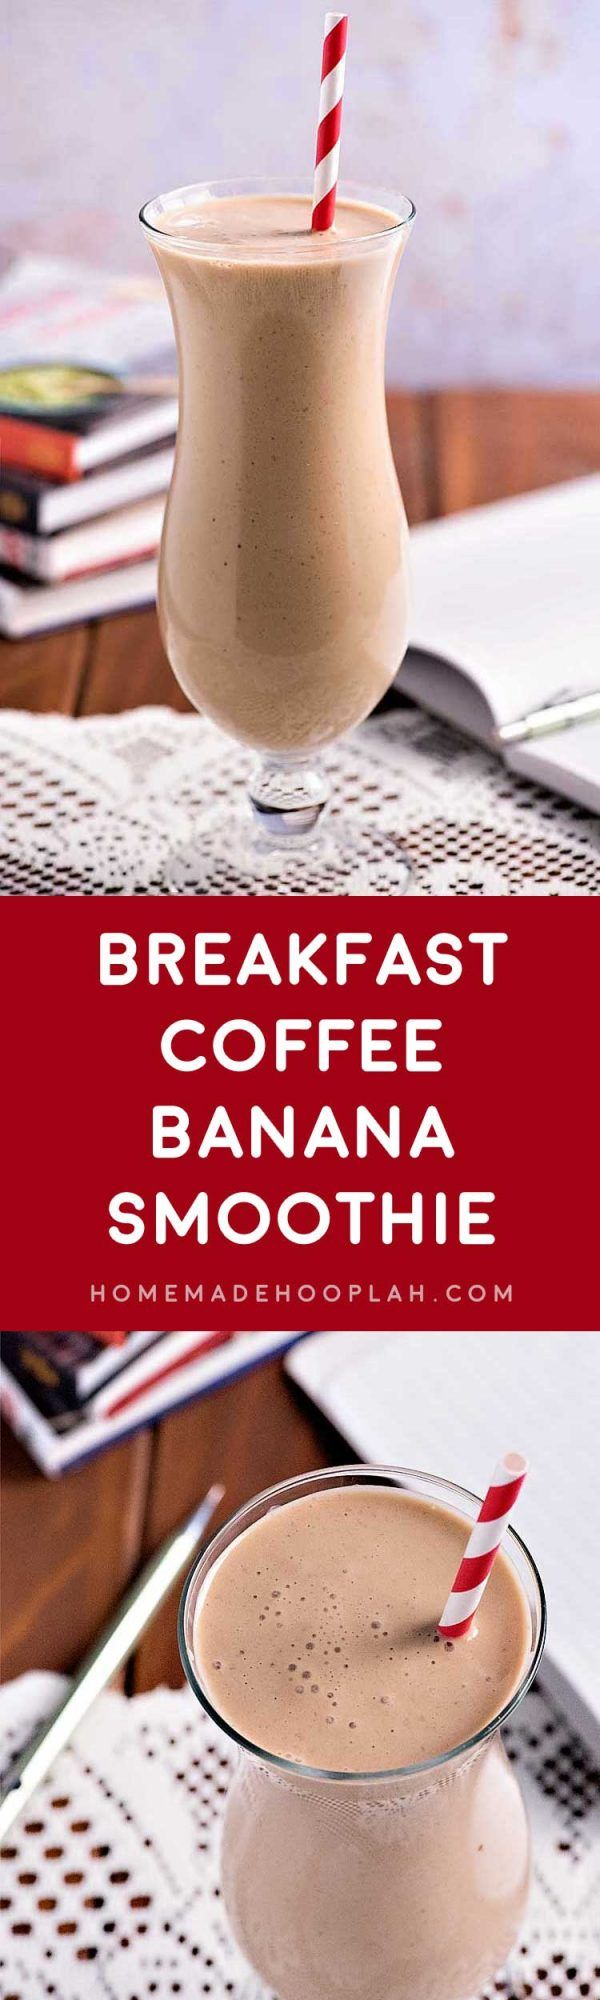 Breakfast Coffee Banana Smoothie! Kick start your morning (or your afternoon or evening!) with this easy smoothie made with bananas, yogurt, and Folgers Instant Coffee. It's the perfect indulgence whenever you need a quick pick-me-up! | HomemadeHooplah.com #recipe #tip #Folgers #ad